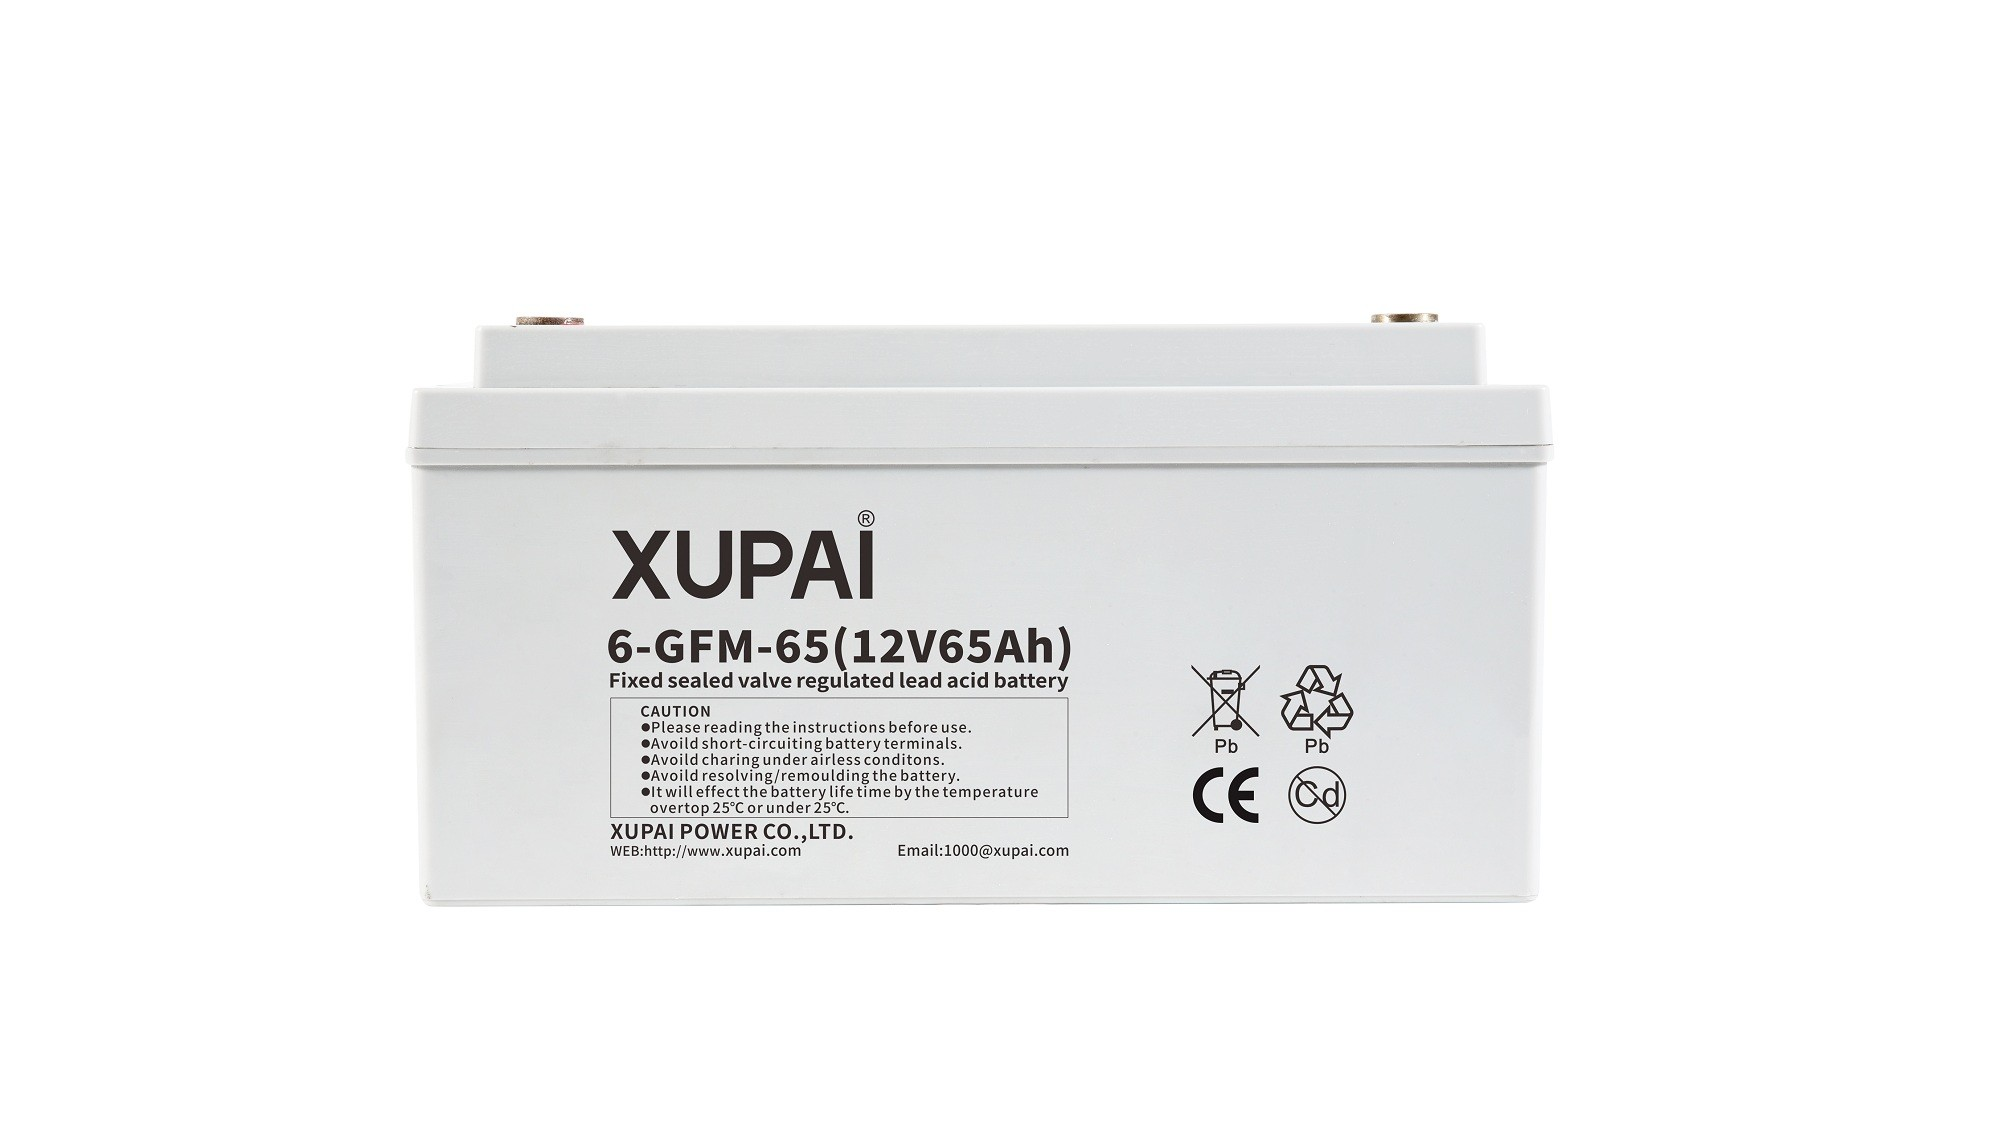 XUPAI 6-GFM-65 long life backup  base station battery